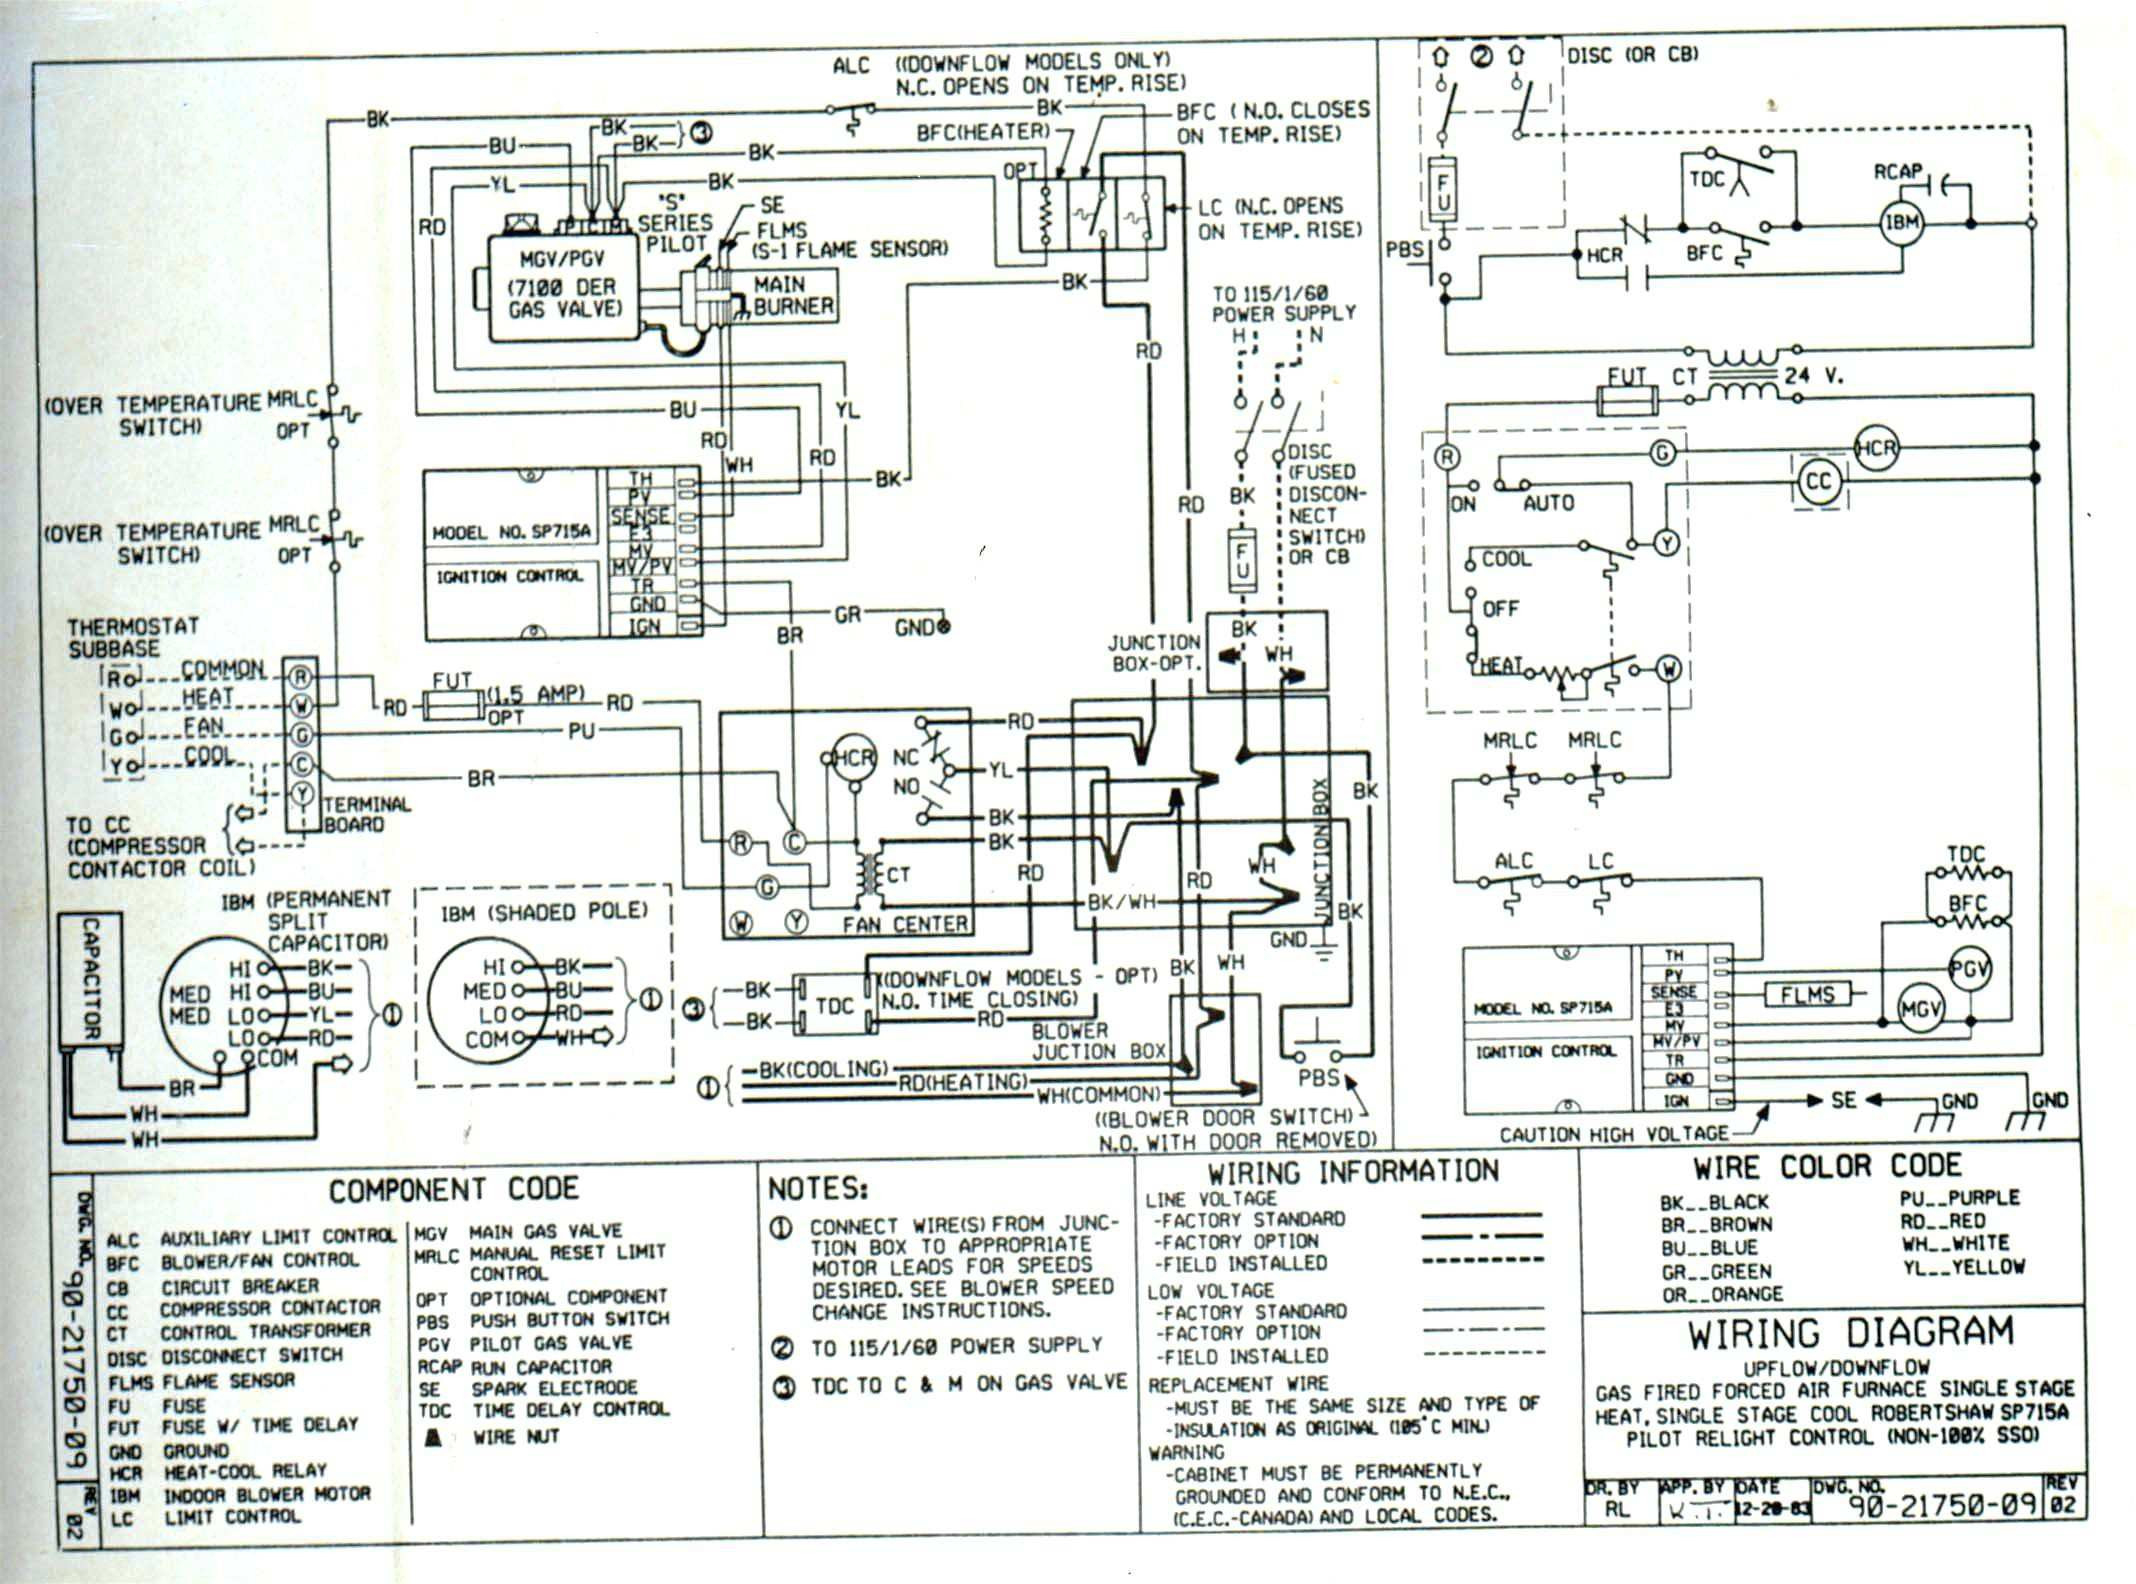 Ac contactor wiring diagram sample wiring diagram sample ac contactor wiring diagram download wiring diagram ductable ac inspirationa fancy c p02 ac contactor asfbconference2016 Images